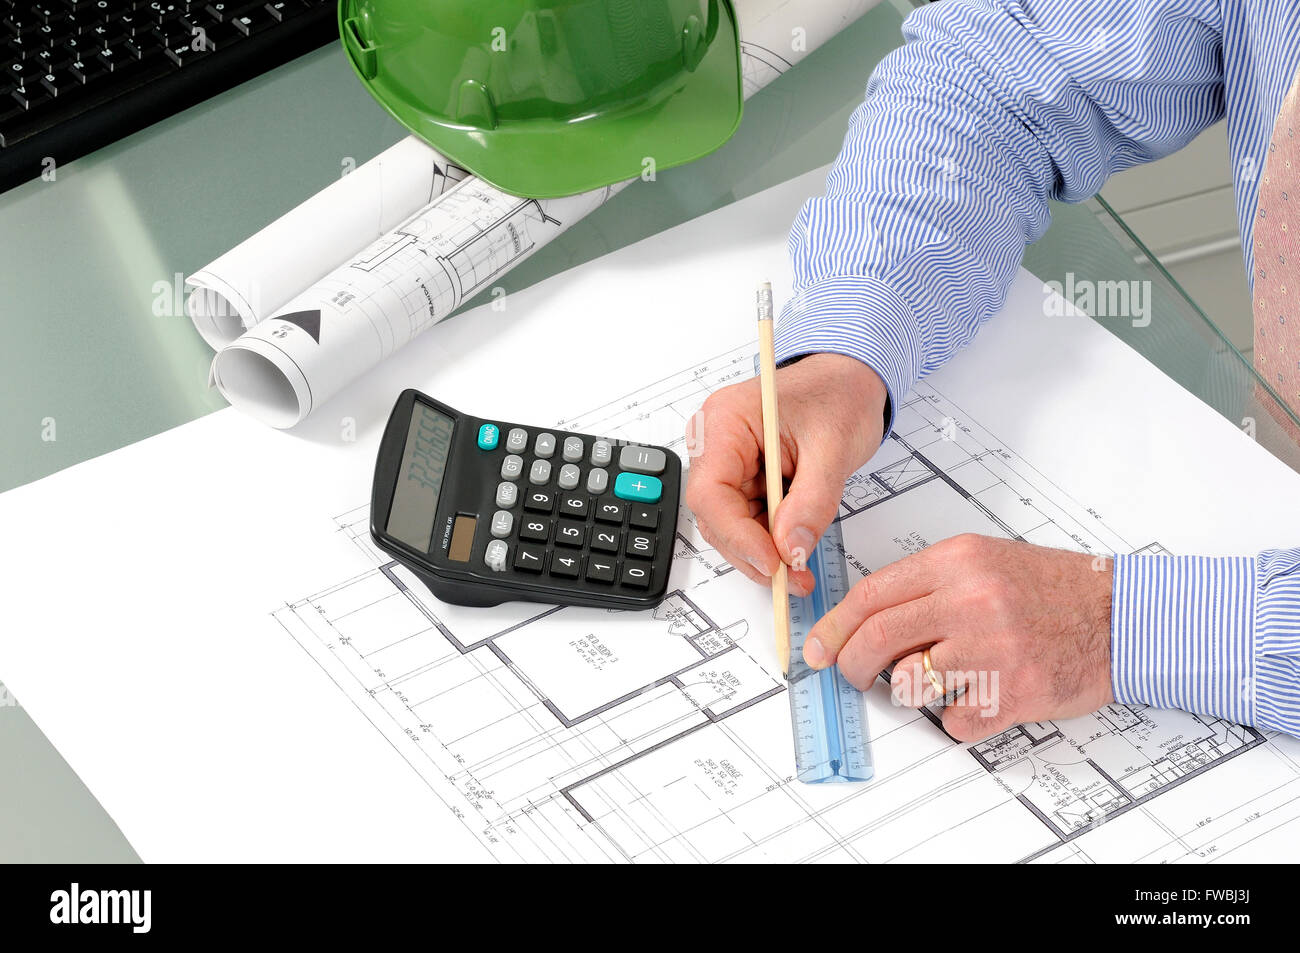 Engineer at work in the office on a residential construction project. - Stock Image